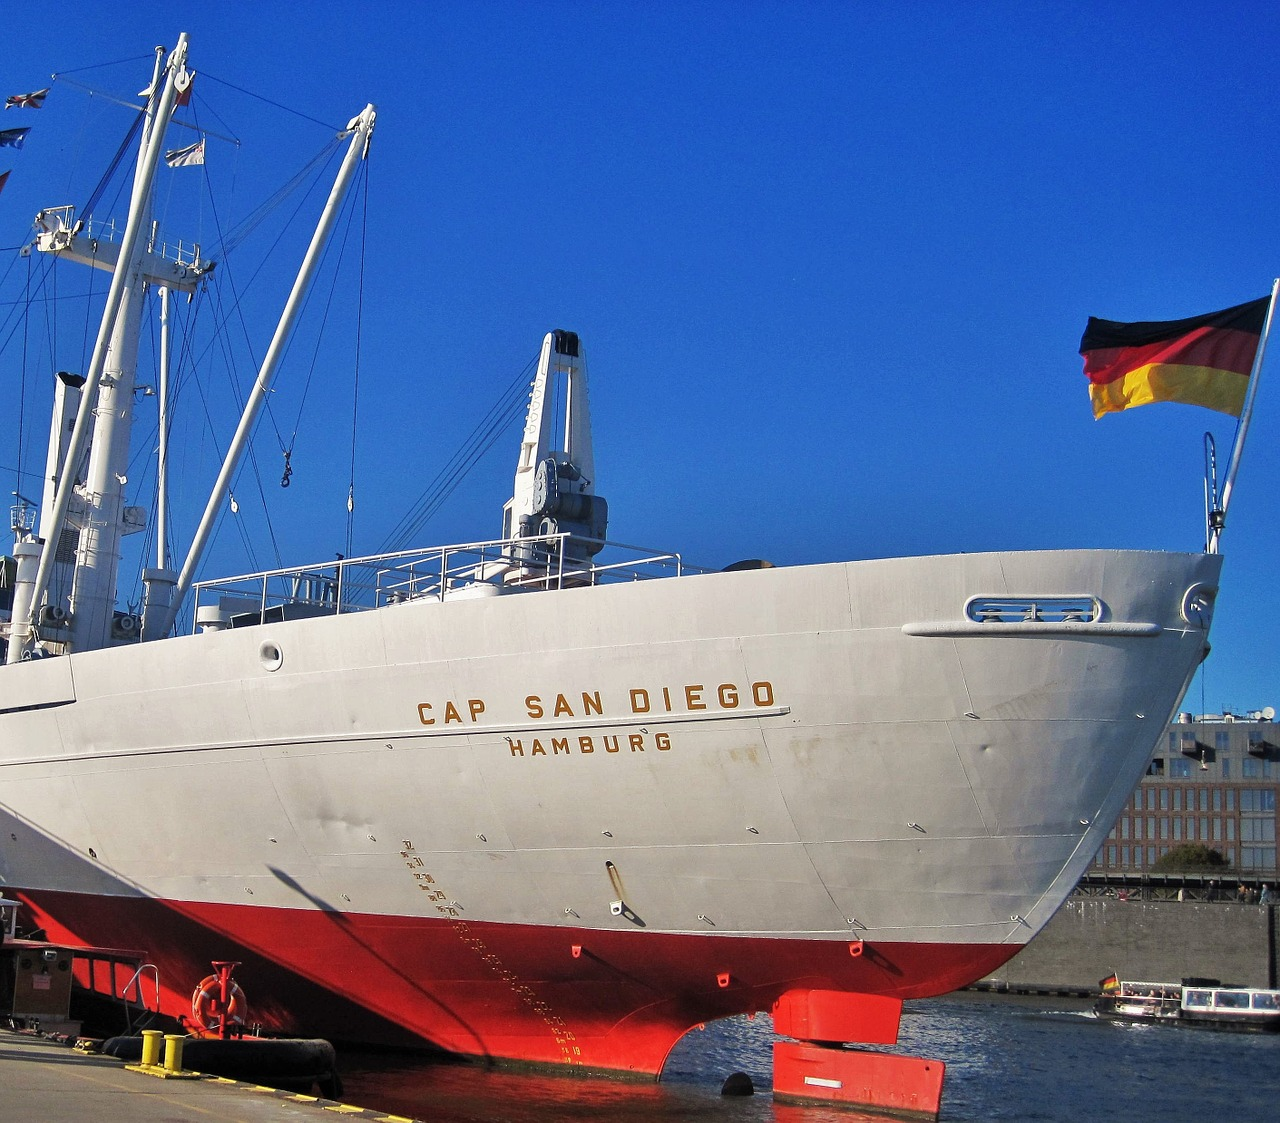 cap san diego ship rear hamburg museum ship free photo